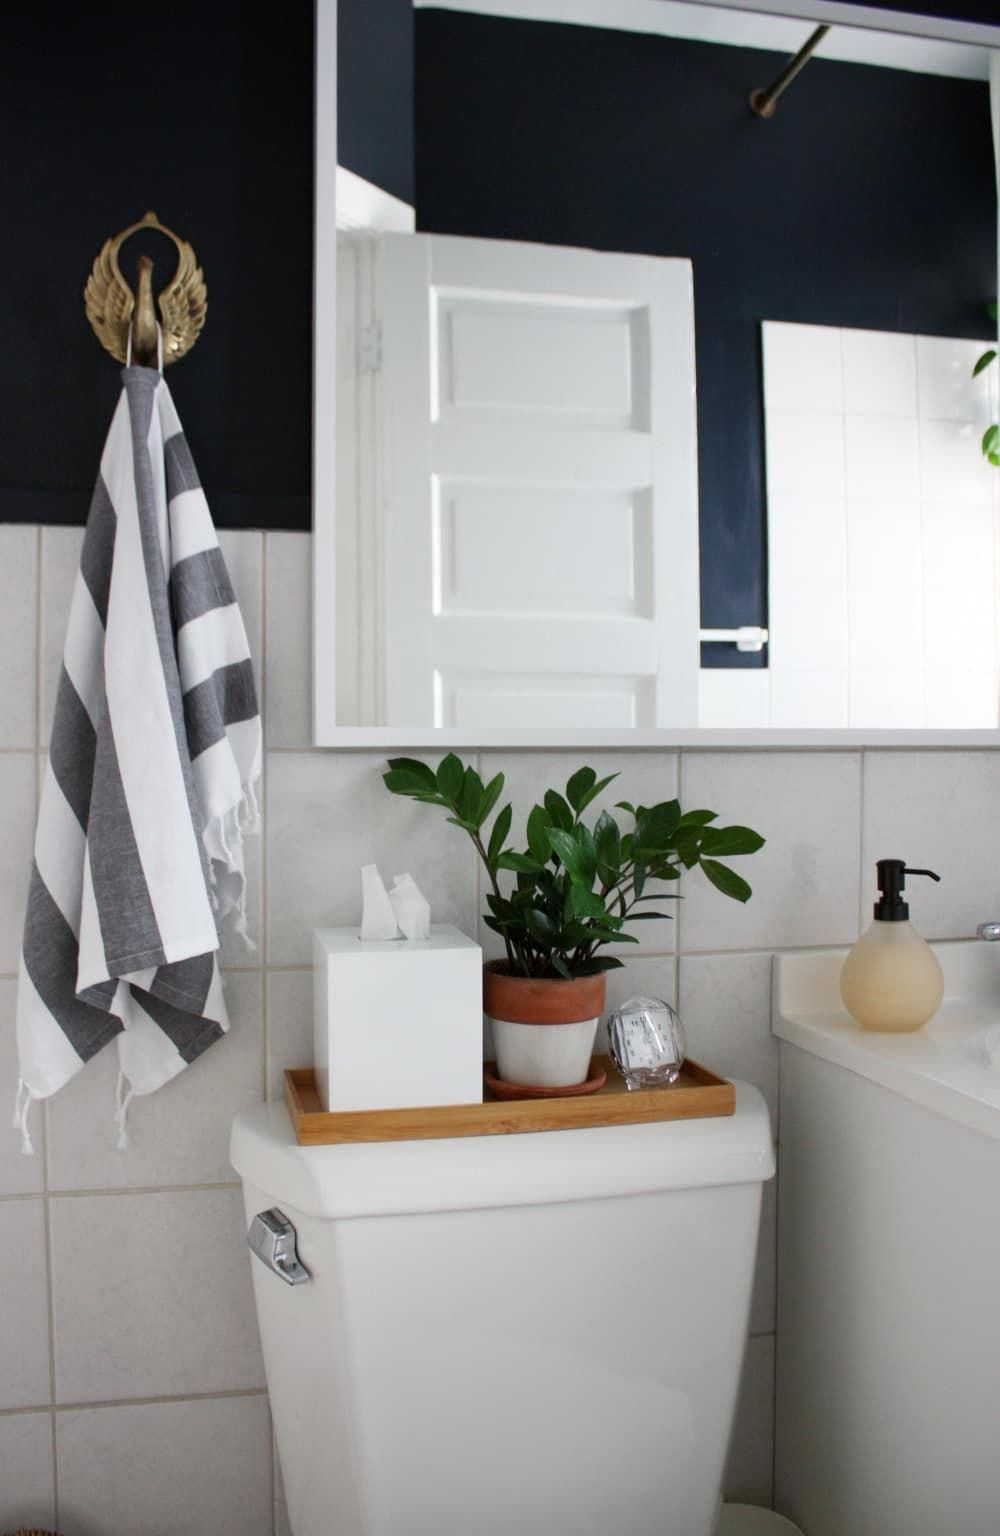 The 50 Best Small Bathroom Ideas To Try Asap Apartment Therapy A Tray On The Toilet For A Candle And Small Bathroom Decor Small Bathroom Windowless Bathroom